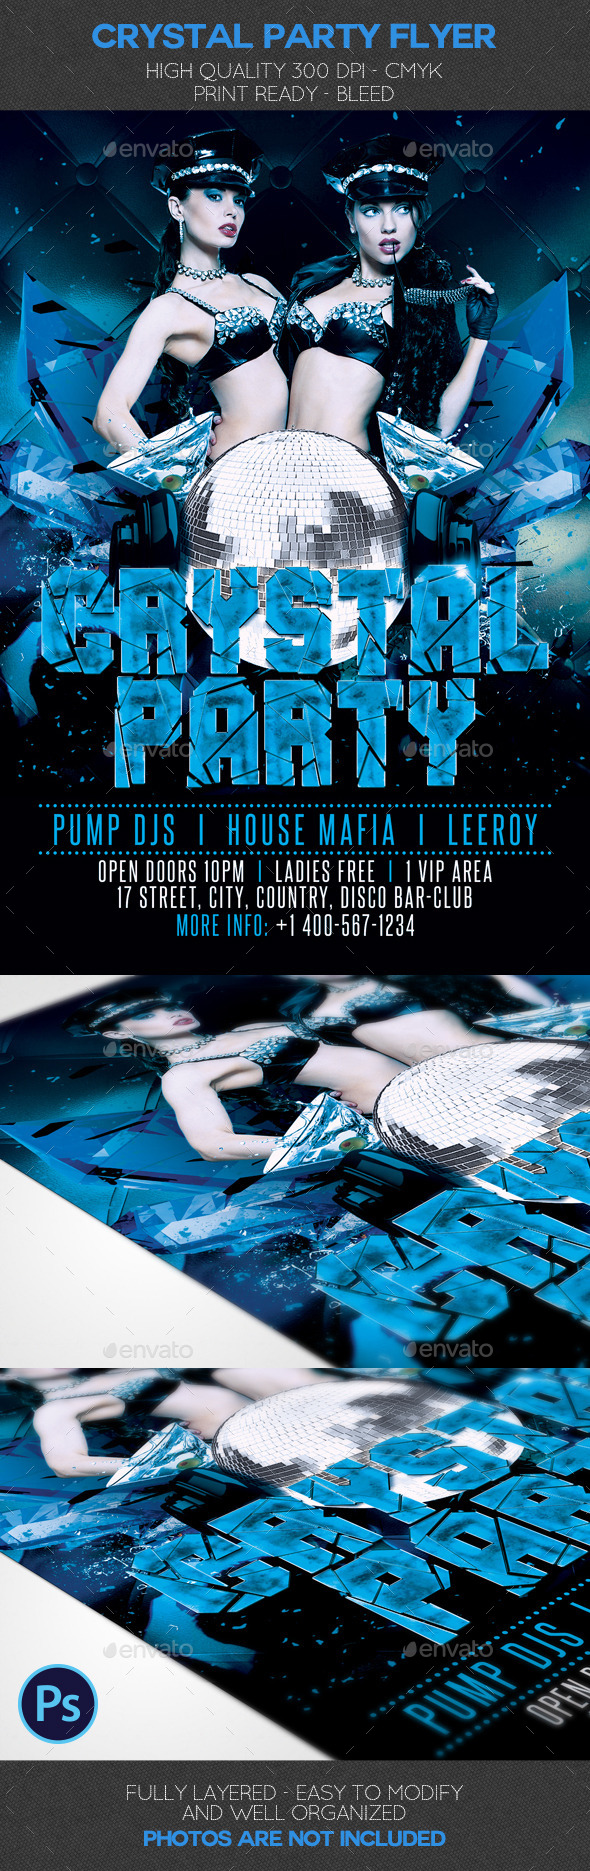 Crystal Party Flyer Template - Clubs & Parties Events